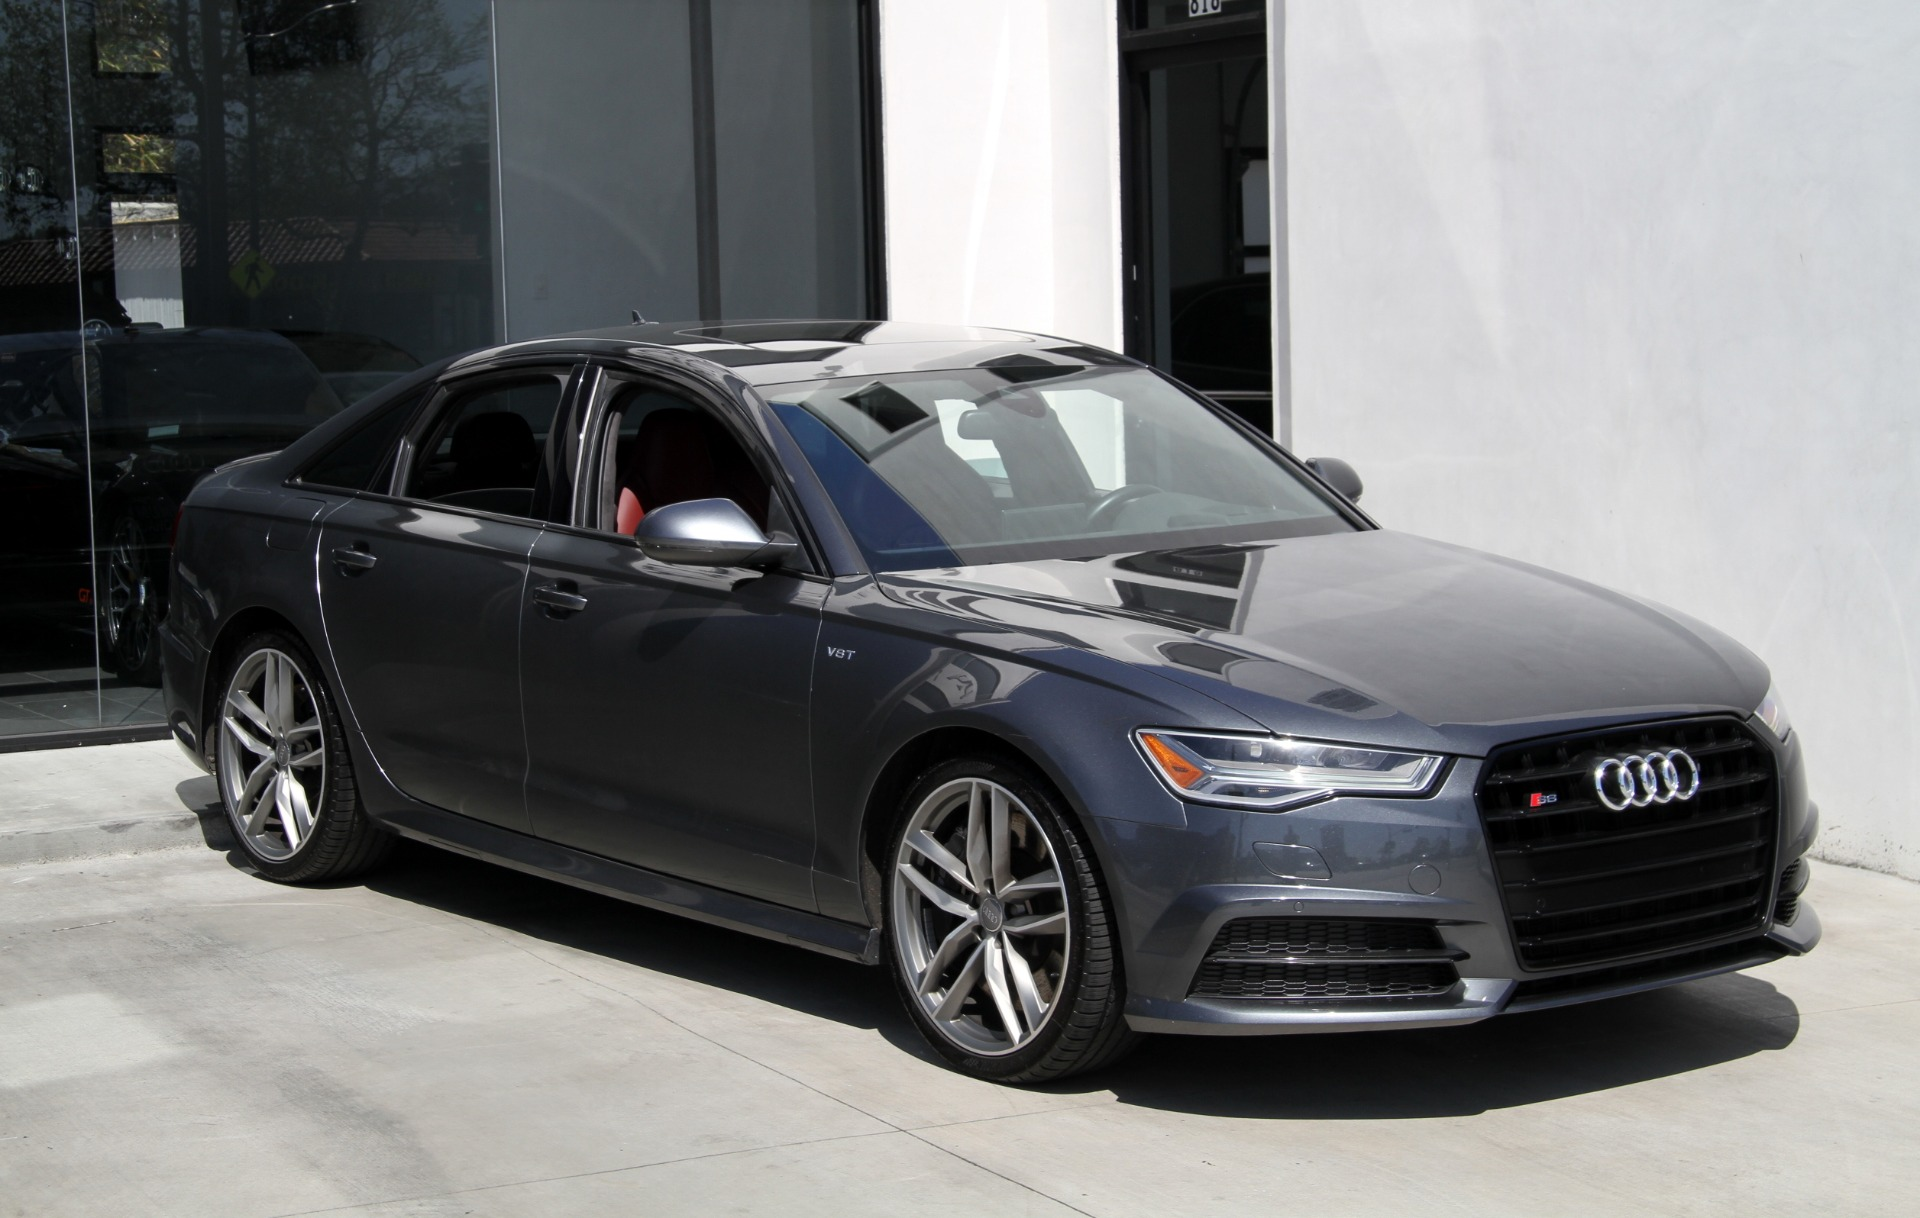 Audi Dealership Near Me >> 2016 Audi S6 4.0T quattro Prestige Stock # 6102 for sale ...